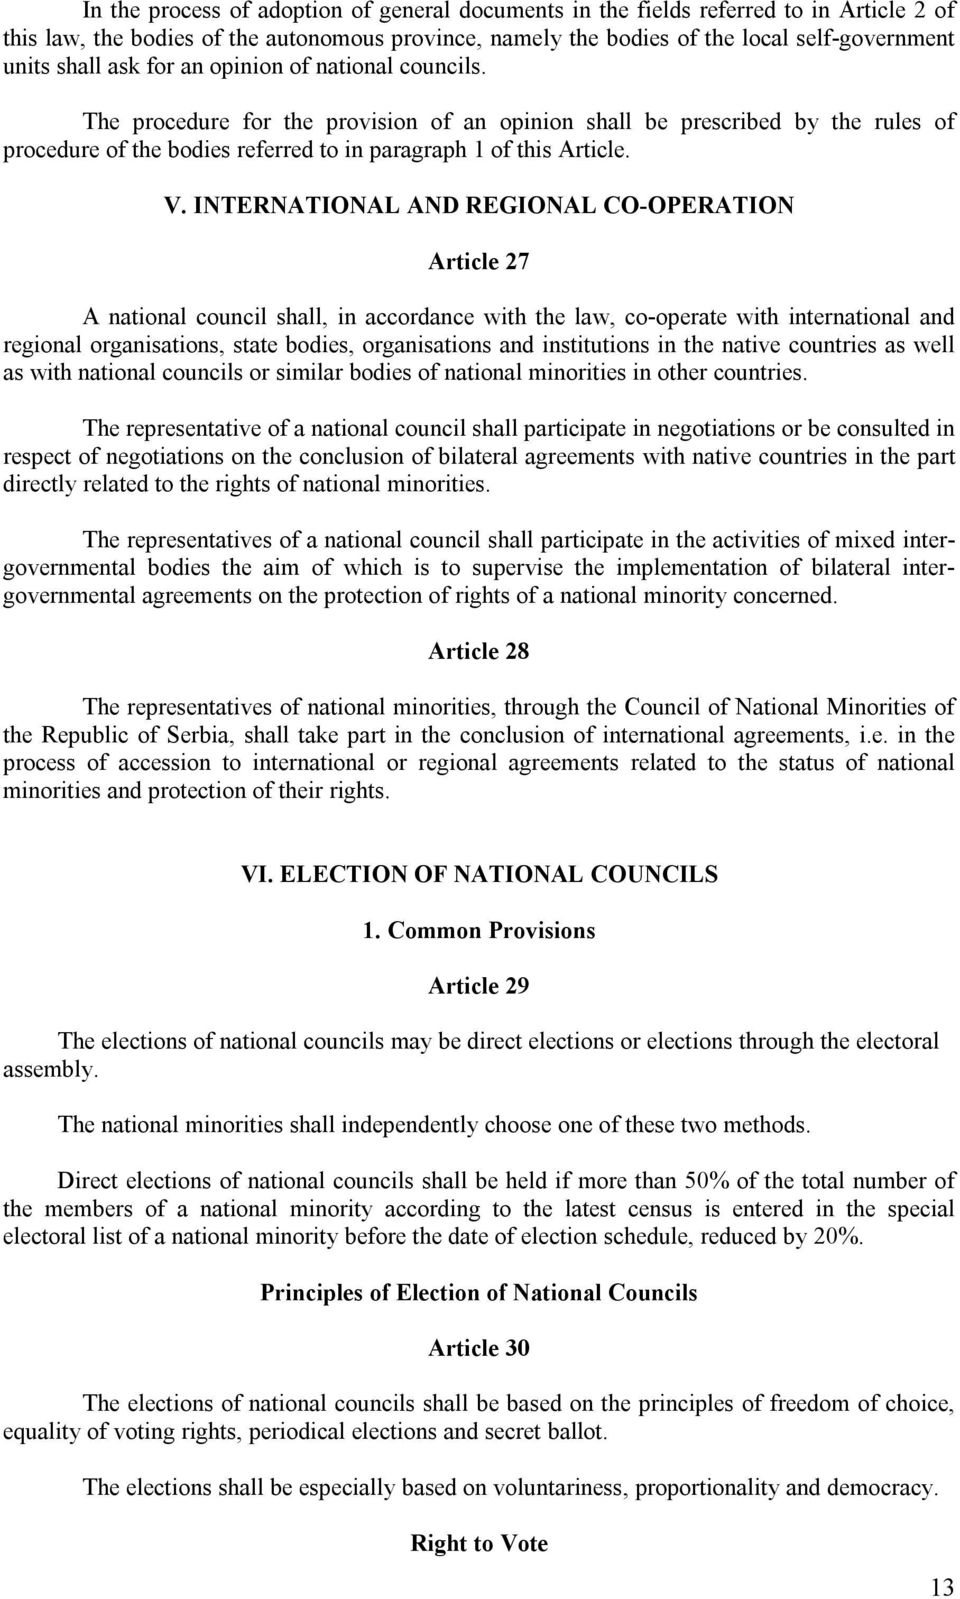 INTERNATIONAL AND REGIONAL CO-OPERATION Article 27 A national council shall, in accordance with the law, co-operate with international and regional organisations, state bodies, organisations and